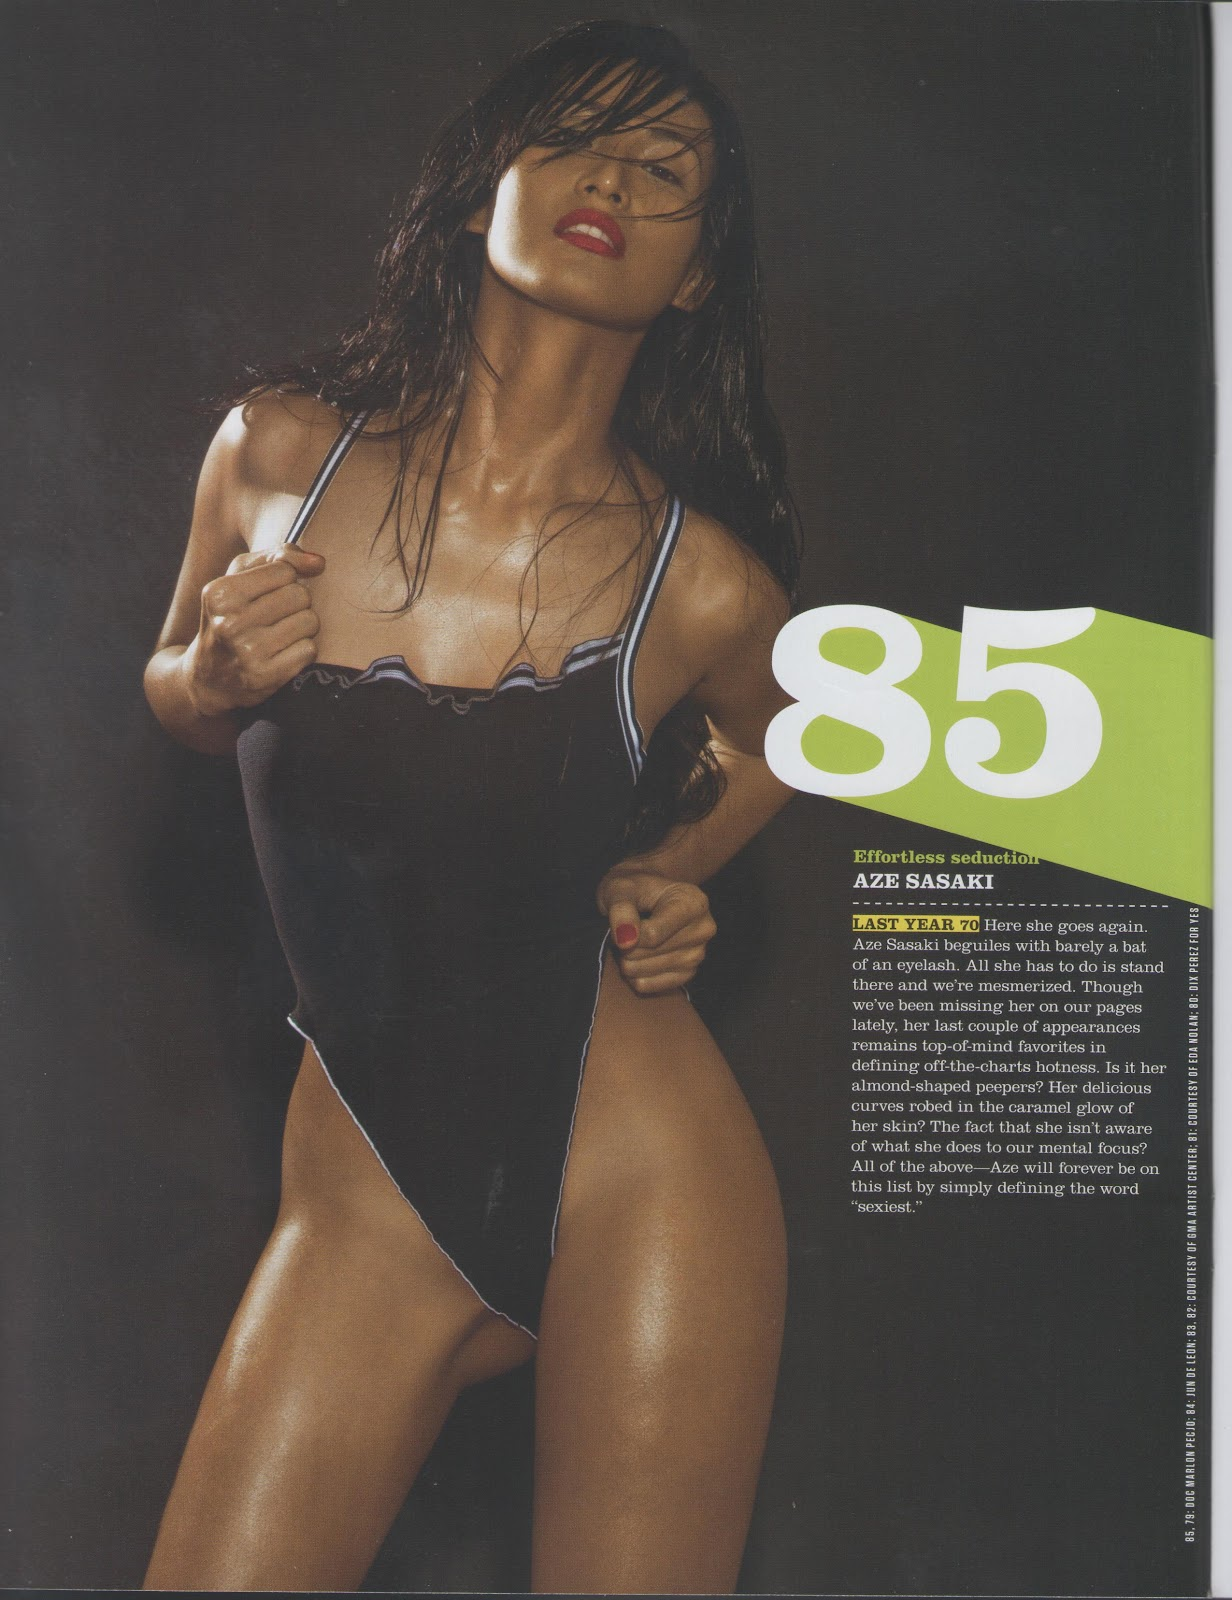 Pinoy Fhm Fhm - 100 Sexiest Women In The World 2012 - Photos-3656